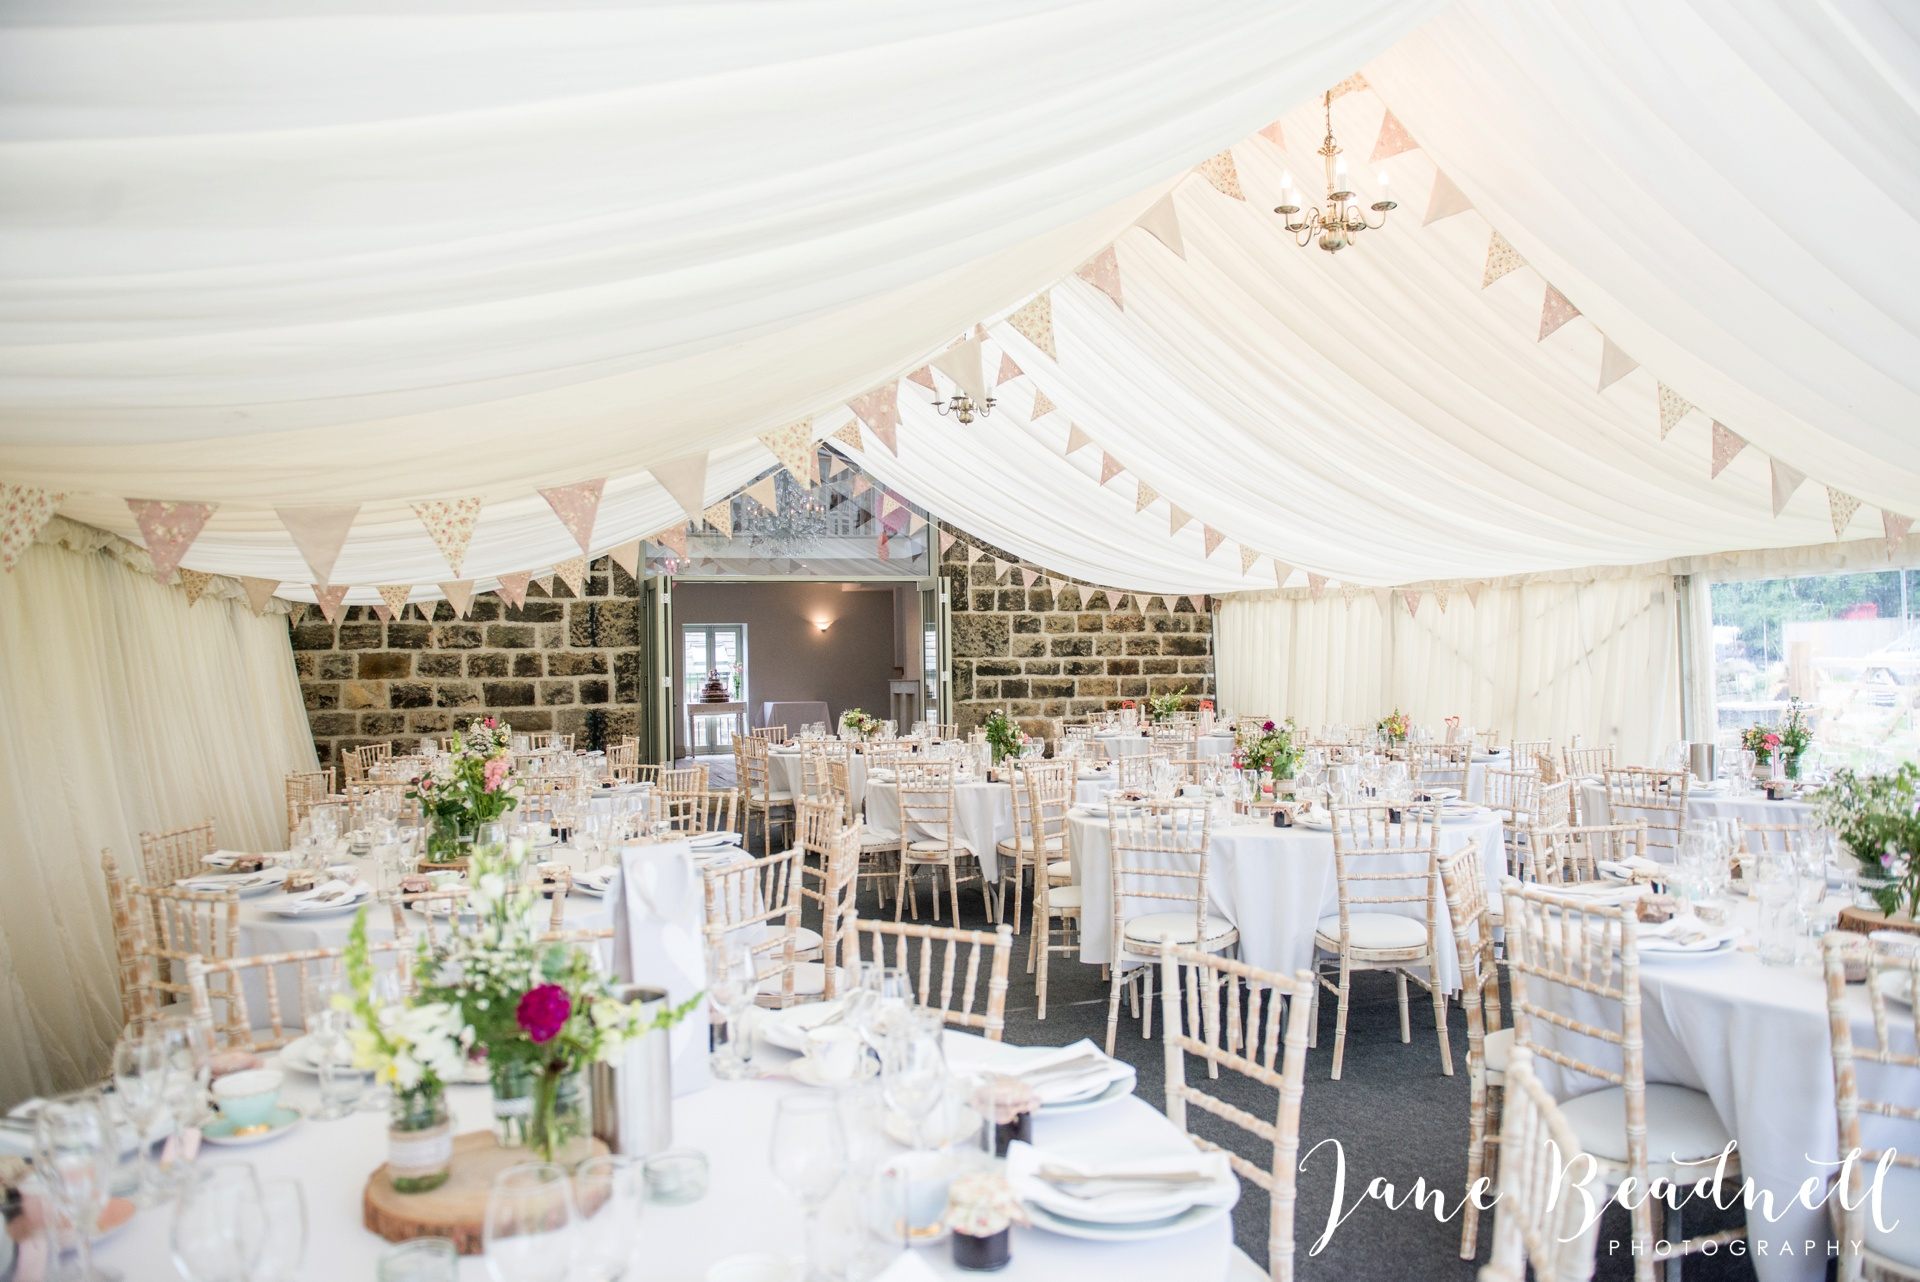 Yorkshire Wedding Photography the cheerful Chilli Barn Wedding by Jane Beadnell Photography_0107